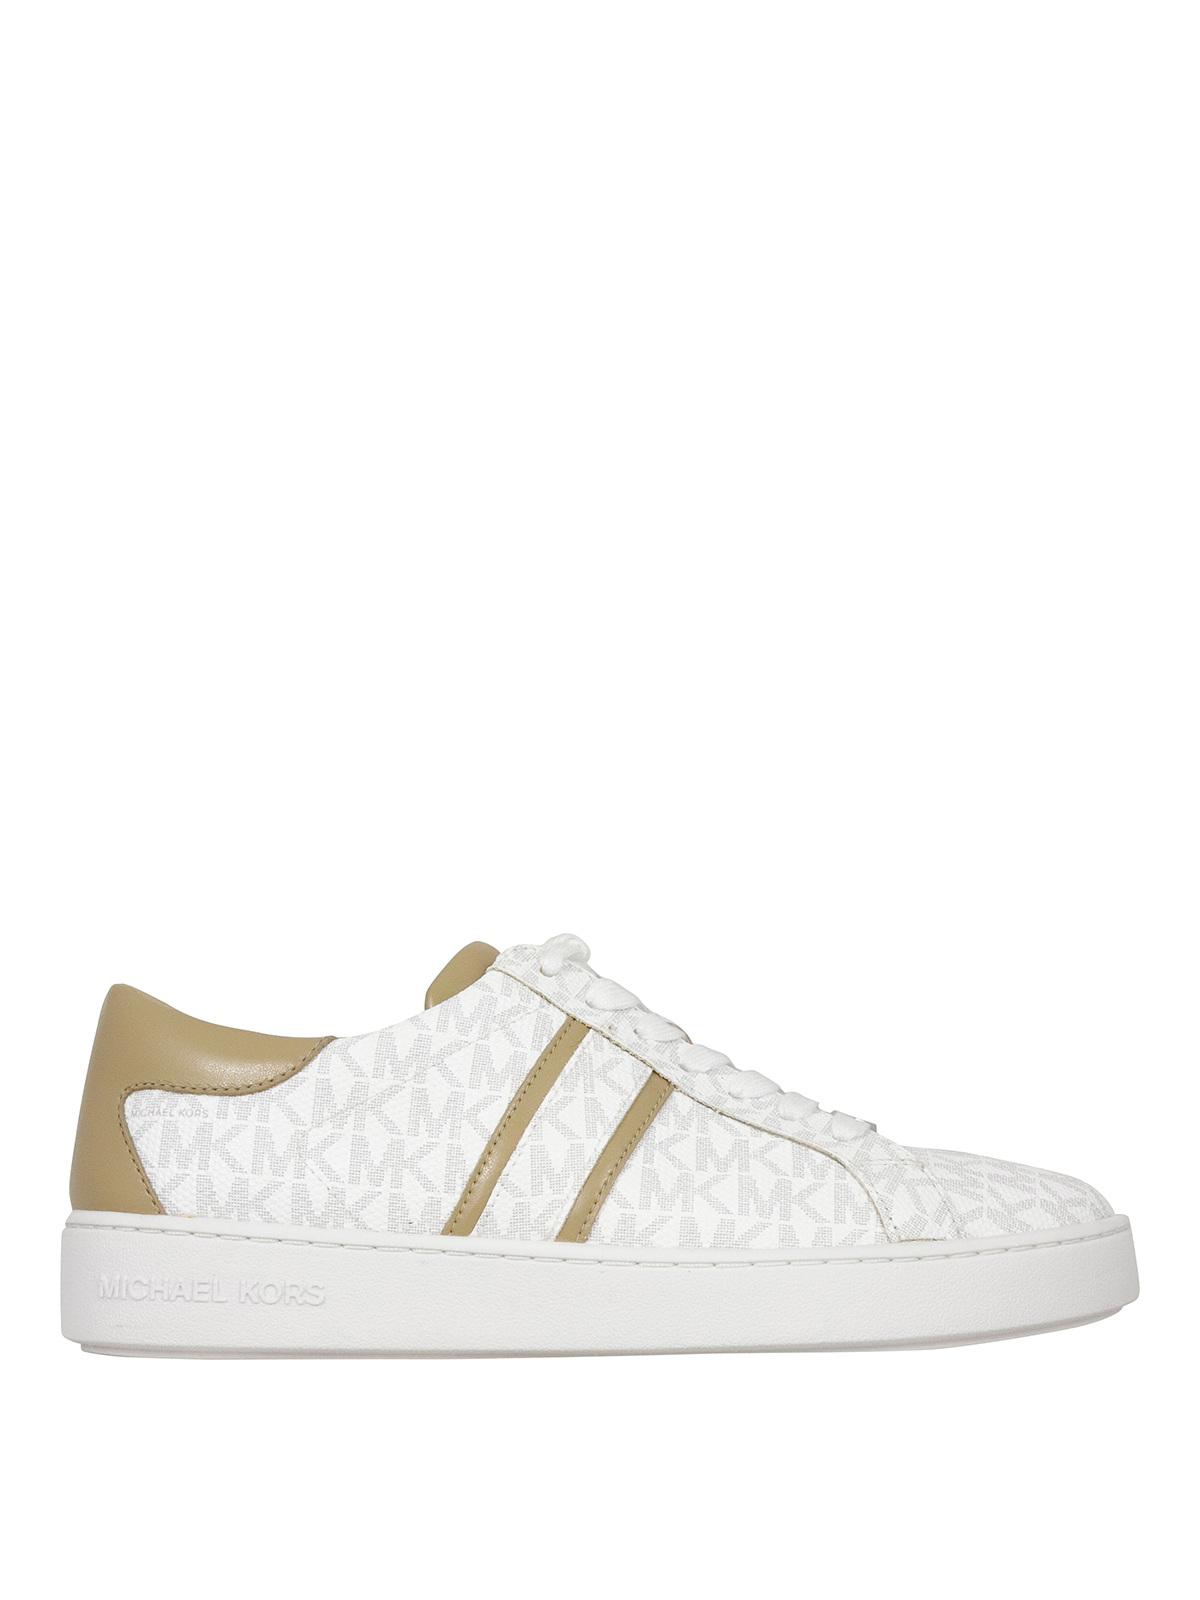 Michael Kors Leathers KEATON SNEAKERS